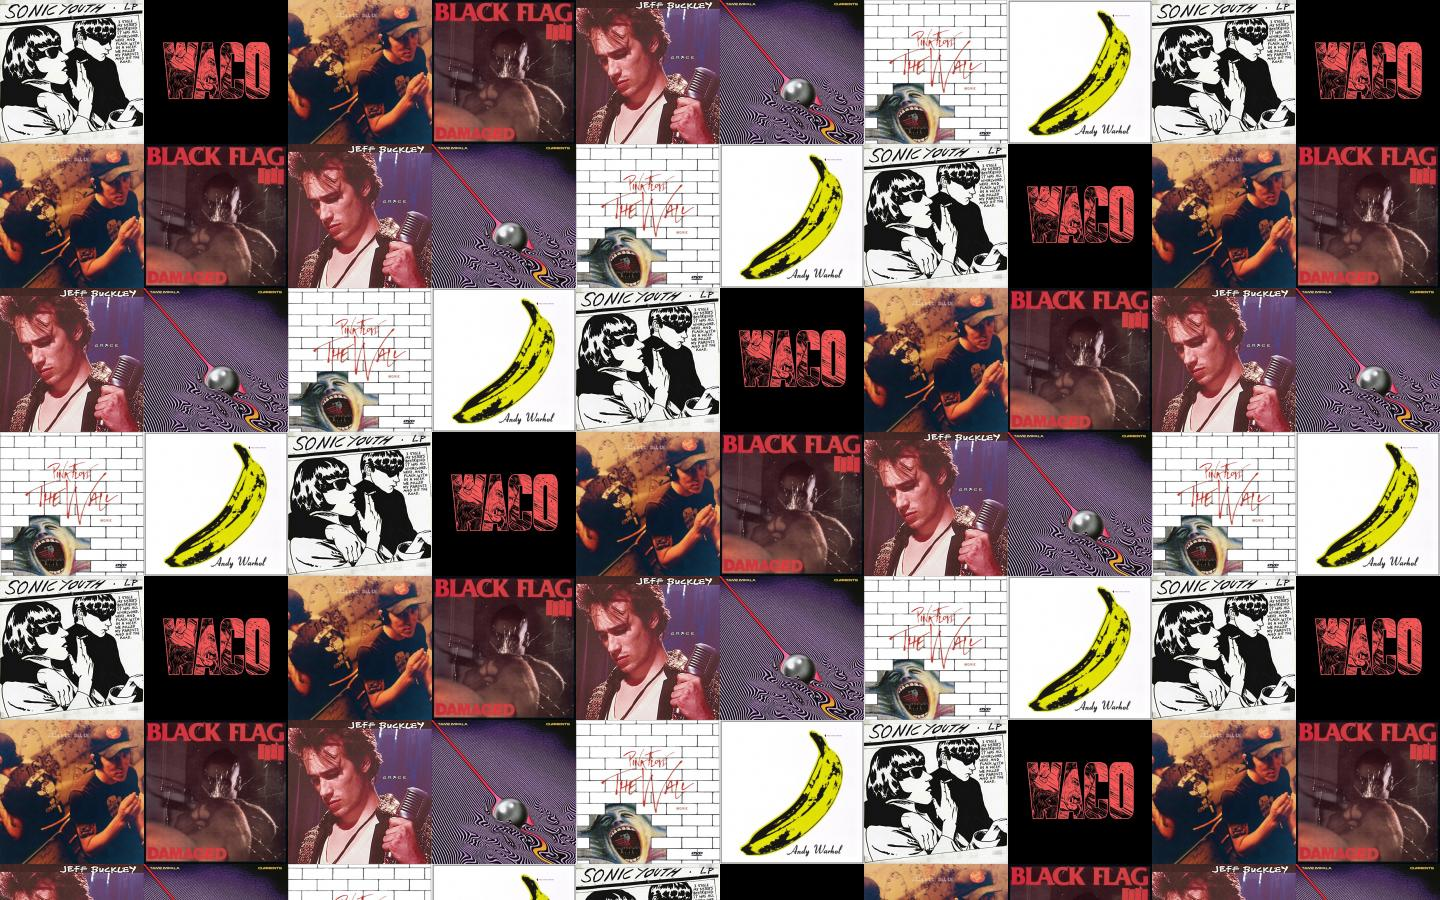 Sonic Youth Goo Violent Soho Waco Elliot Smith Wallpaper Tiled